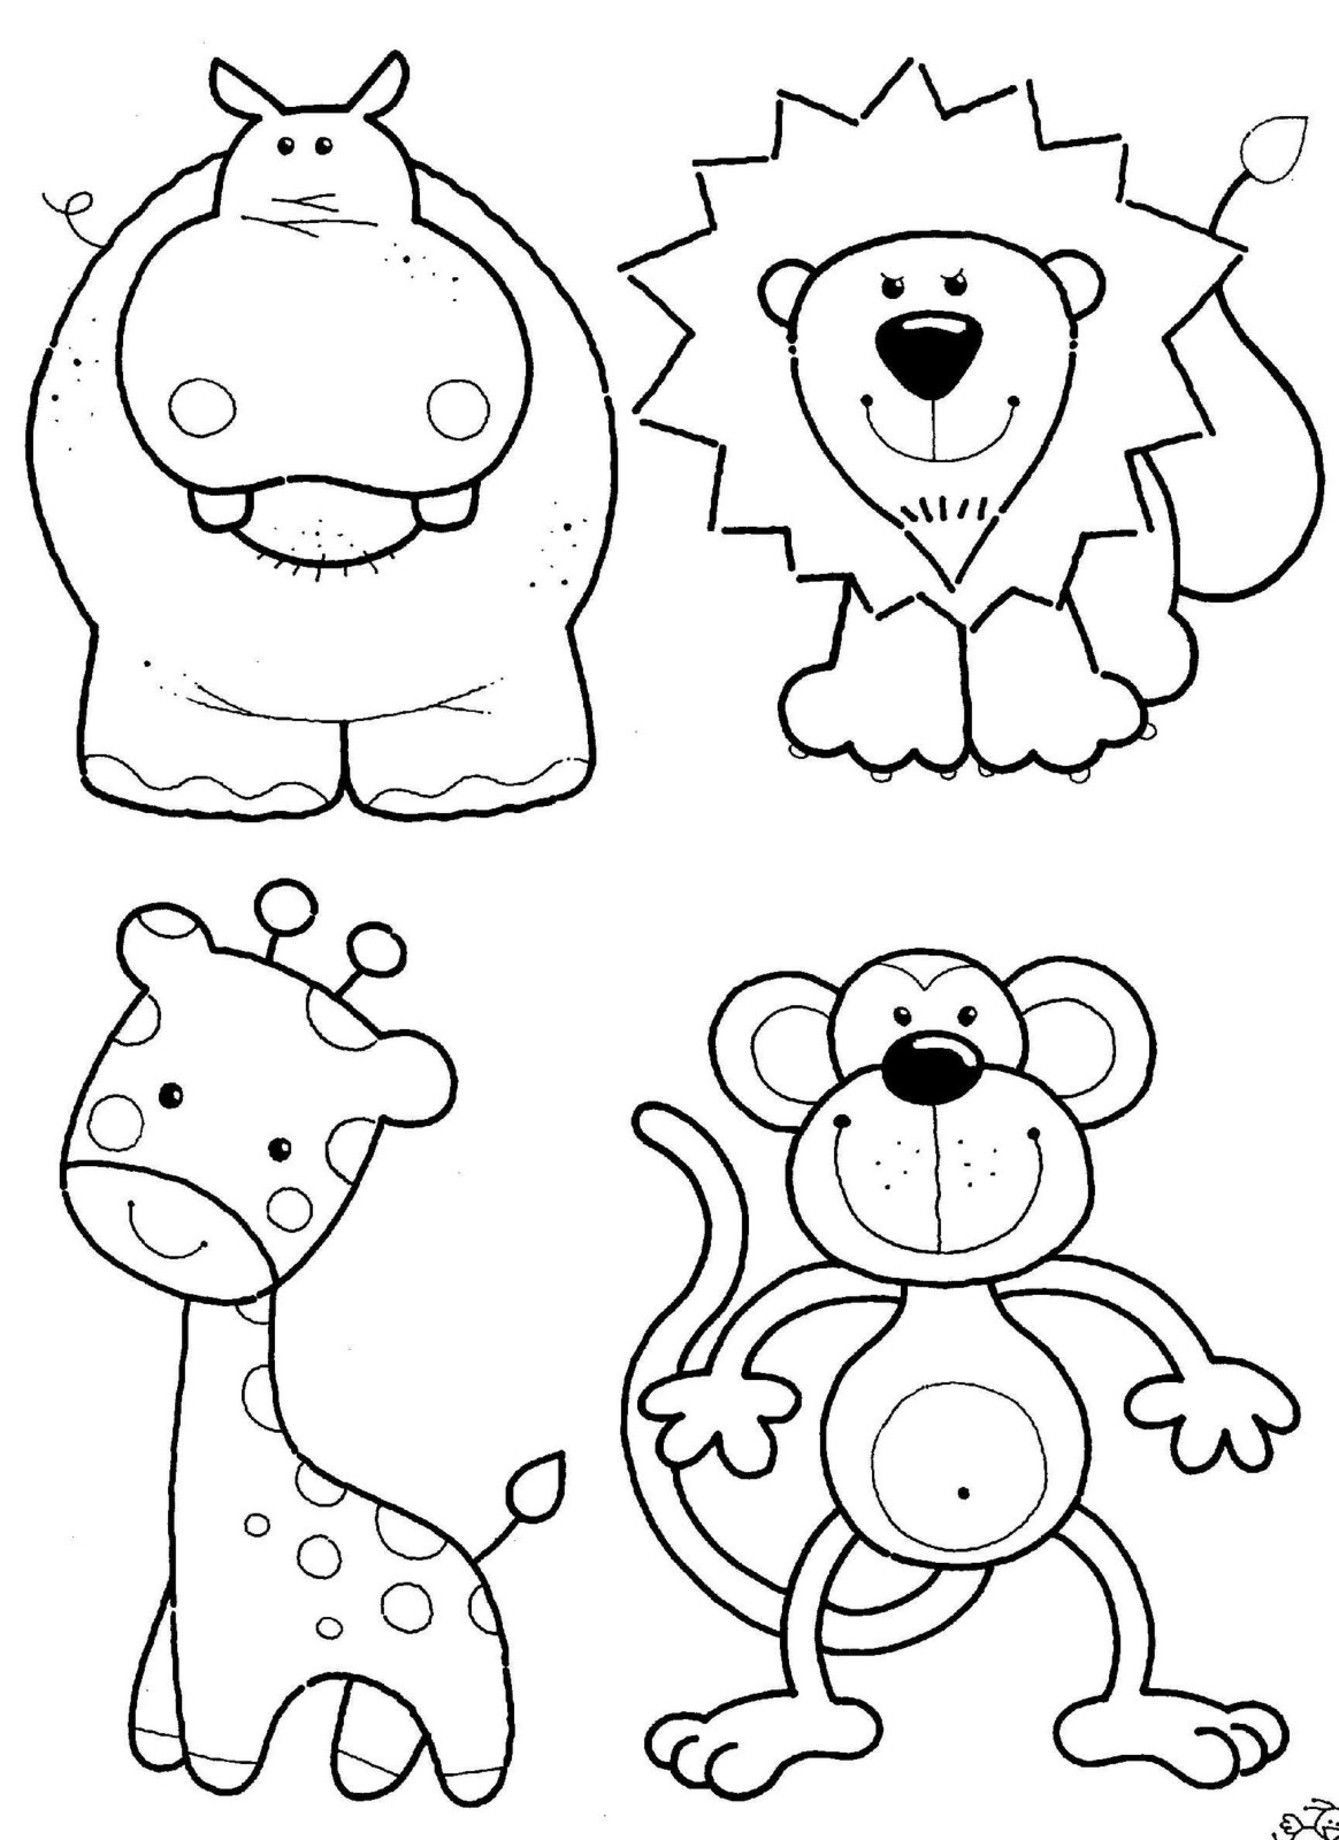 animals images for coloring - Free Large Images | Daycare Ideas ...